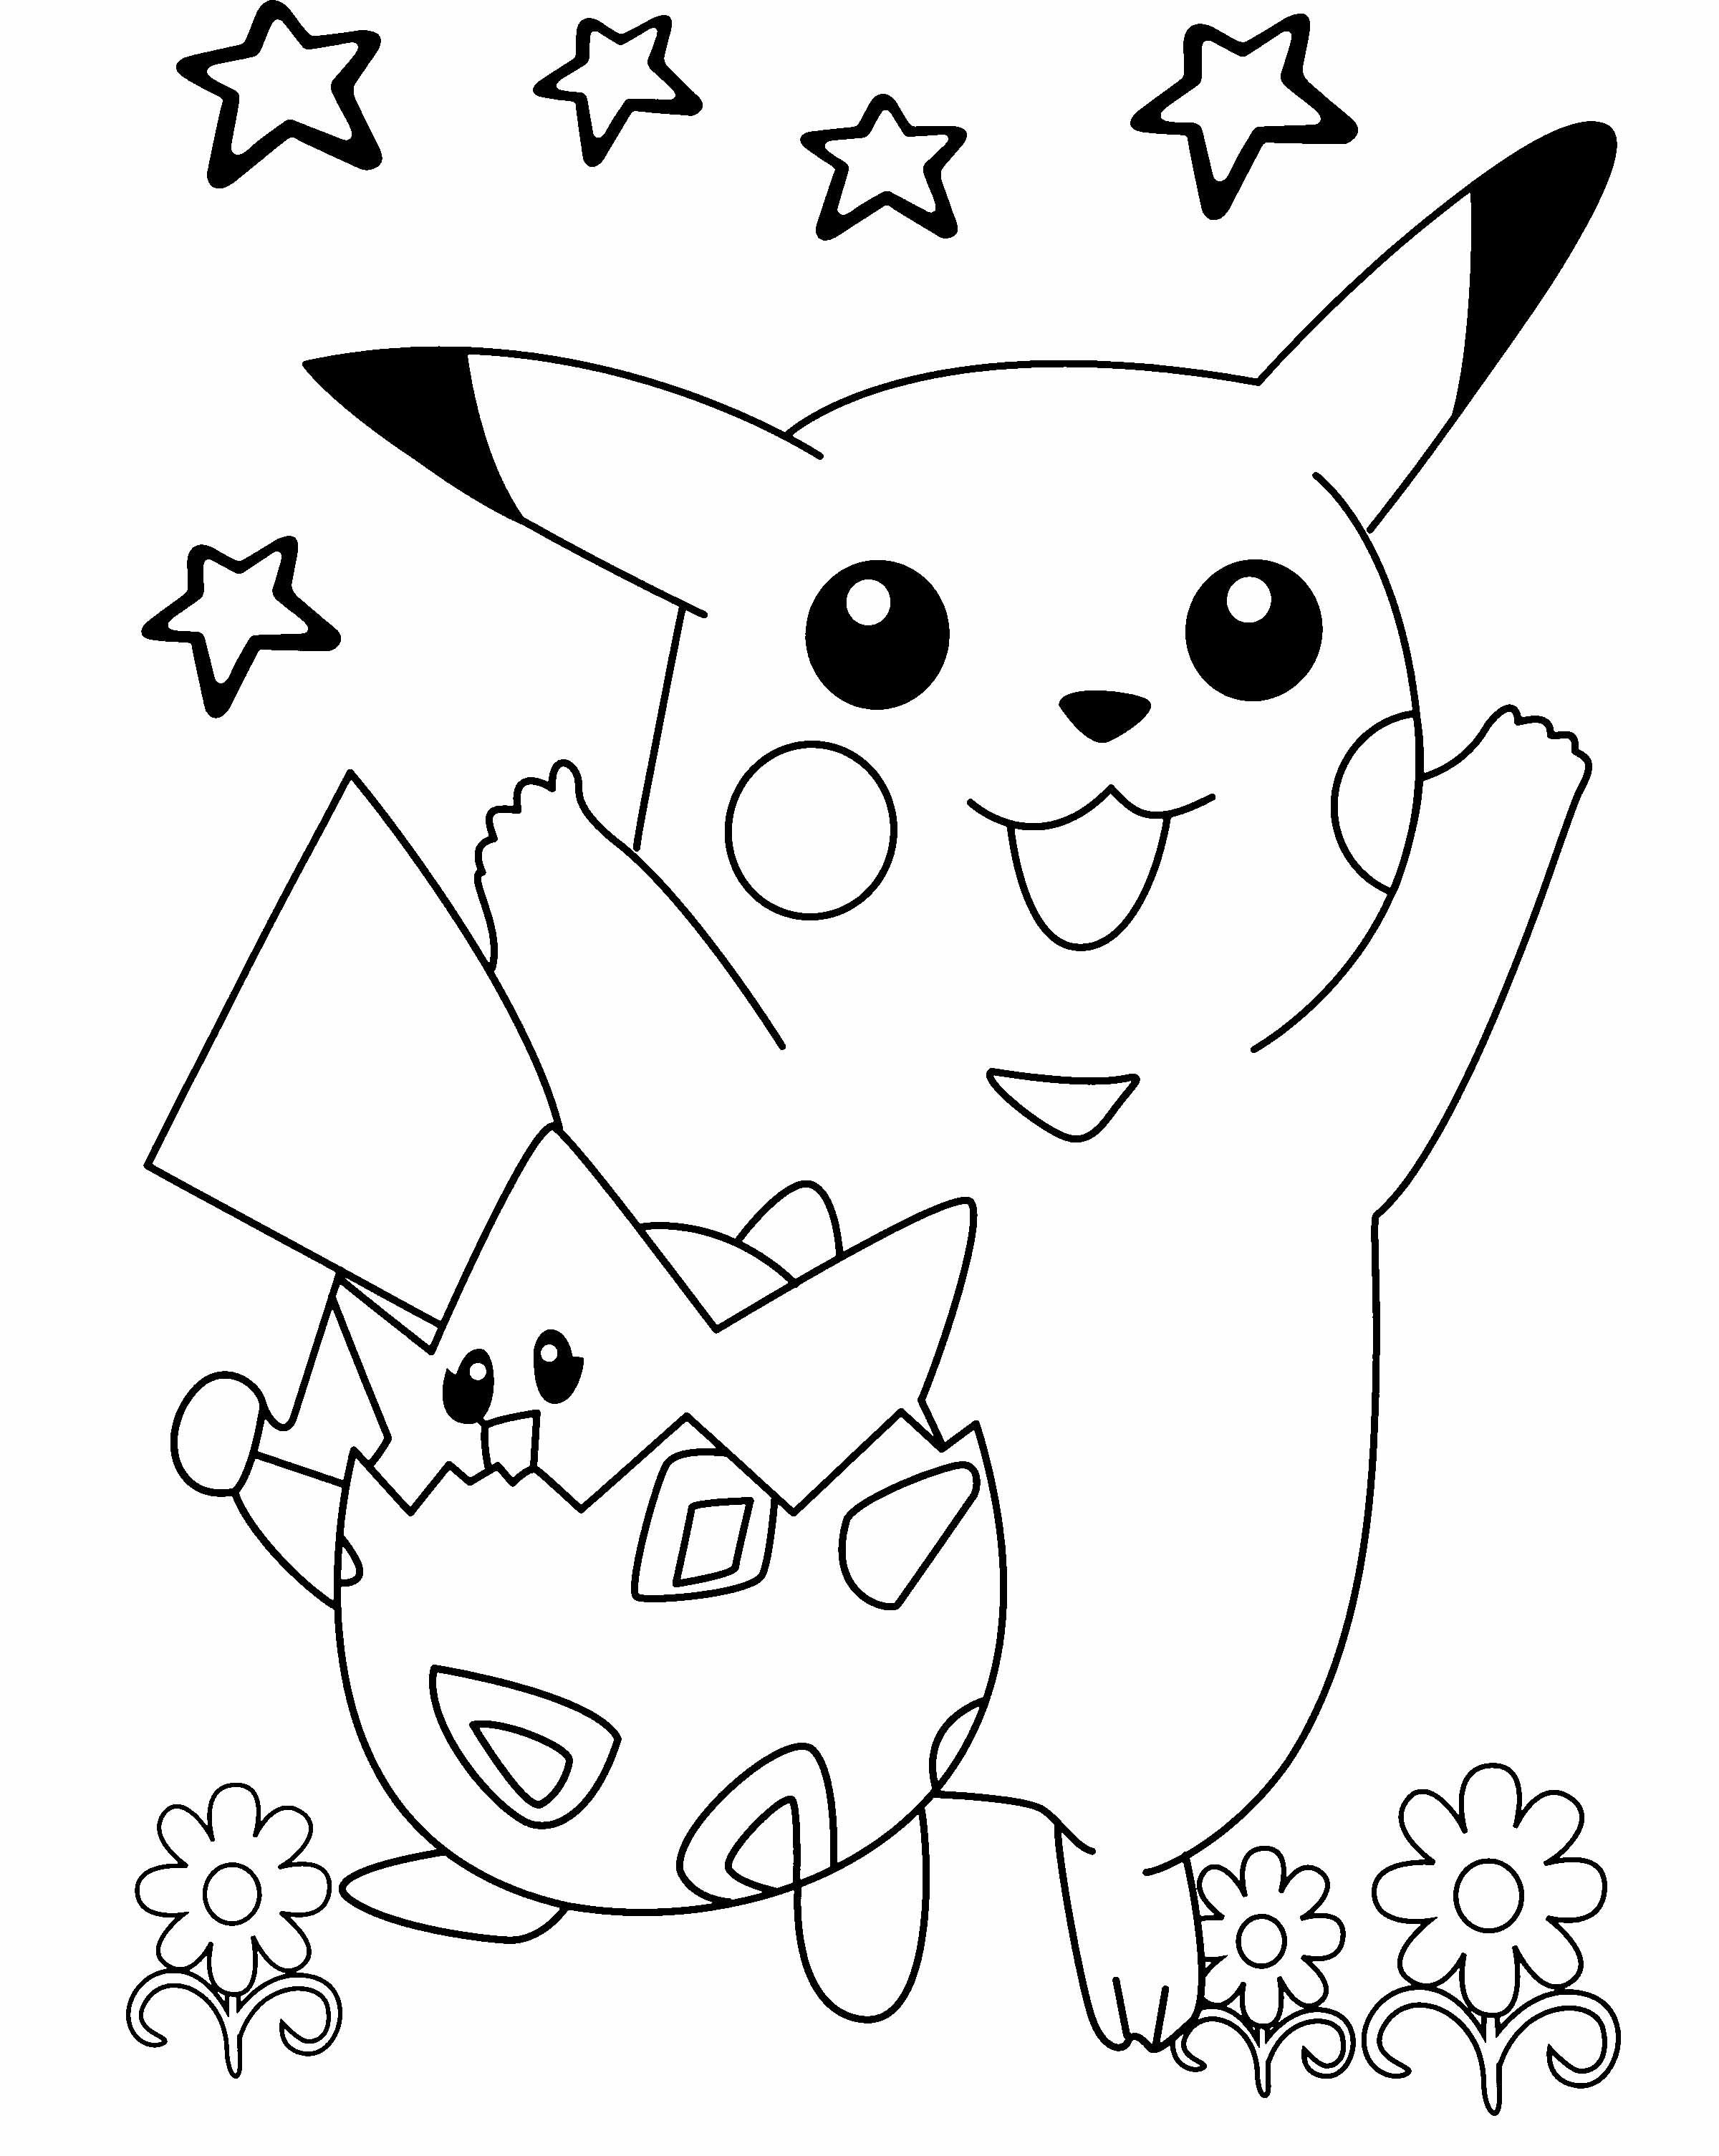 Pokemon Pikachu Playing In The Flower Garden Coloring